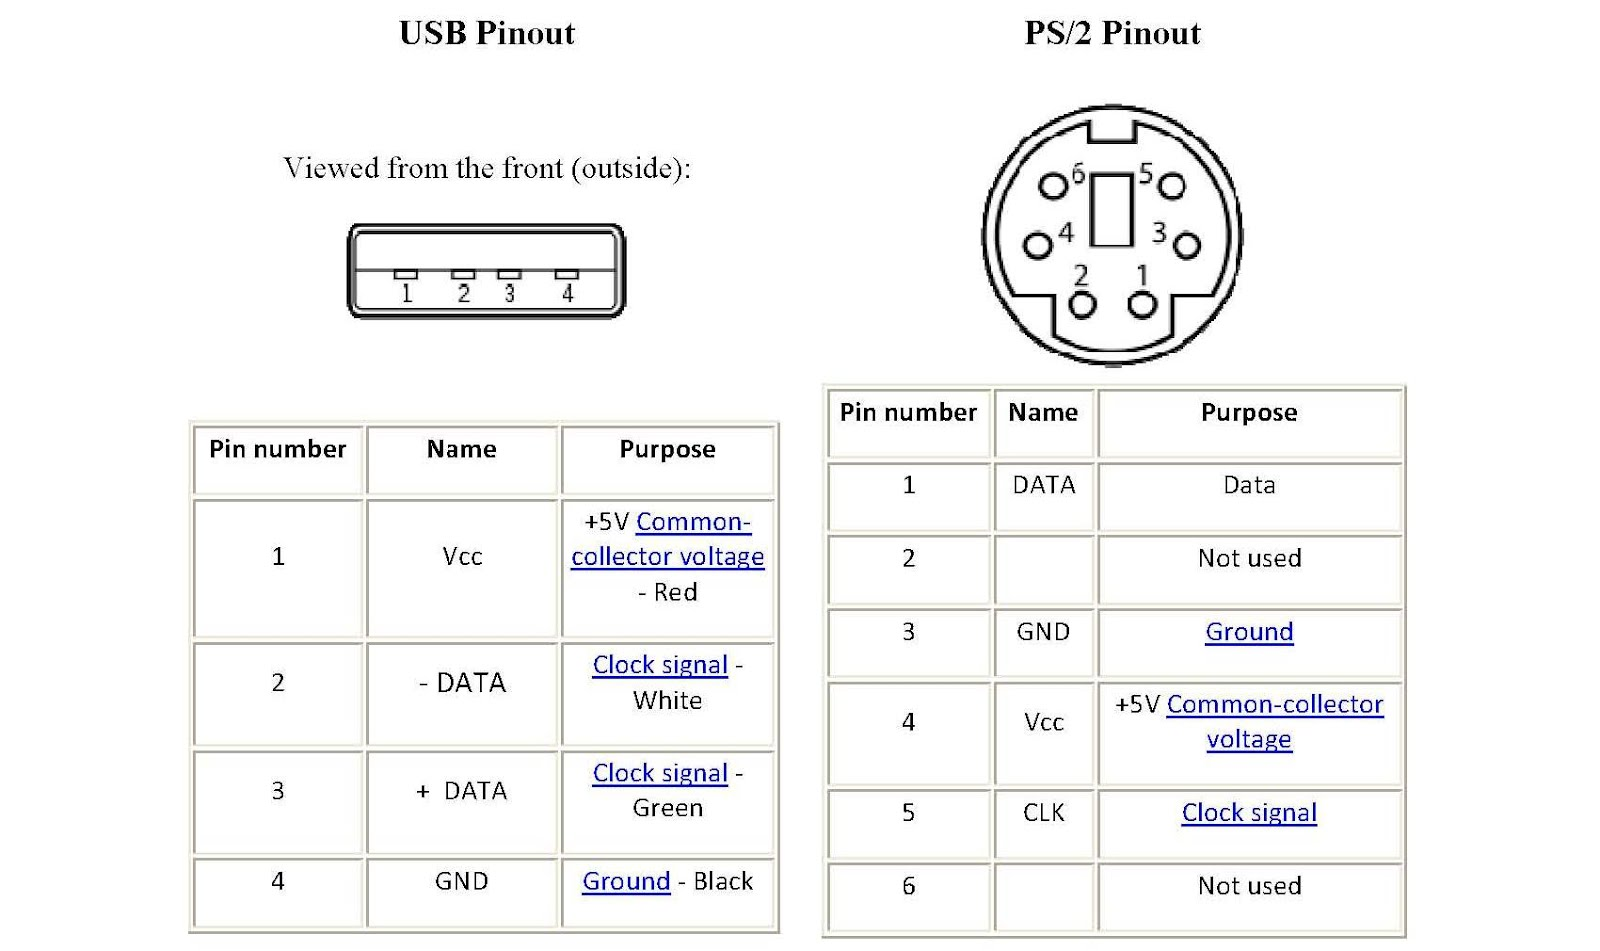 ps2 keyboard to usb wiring diagram wiring diagramps 2 keyboard to usb tom\\u0027s hardware forum ps2 keyboard to usb wiring diagram